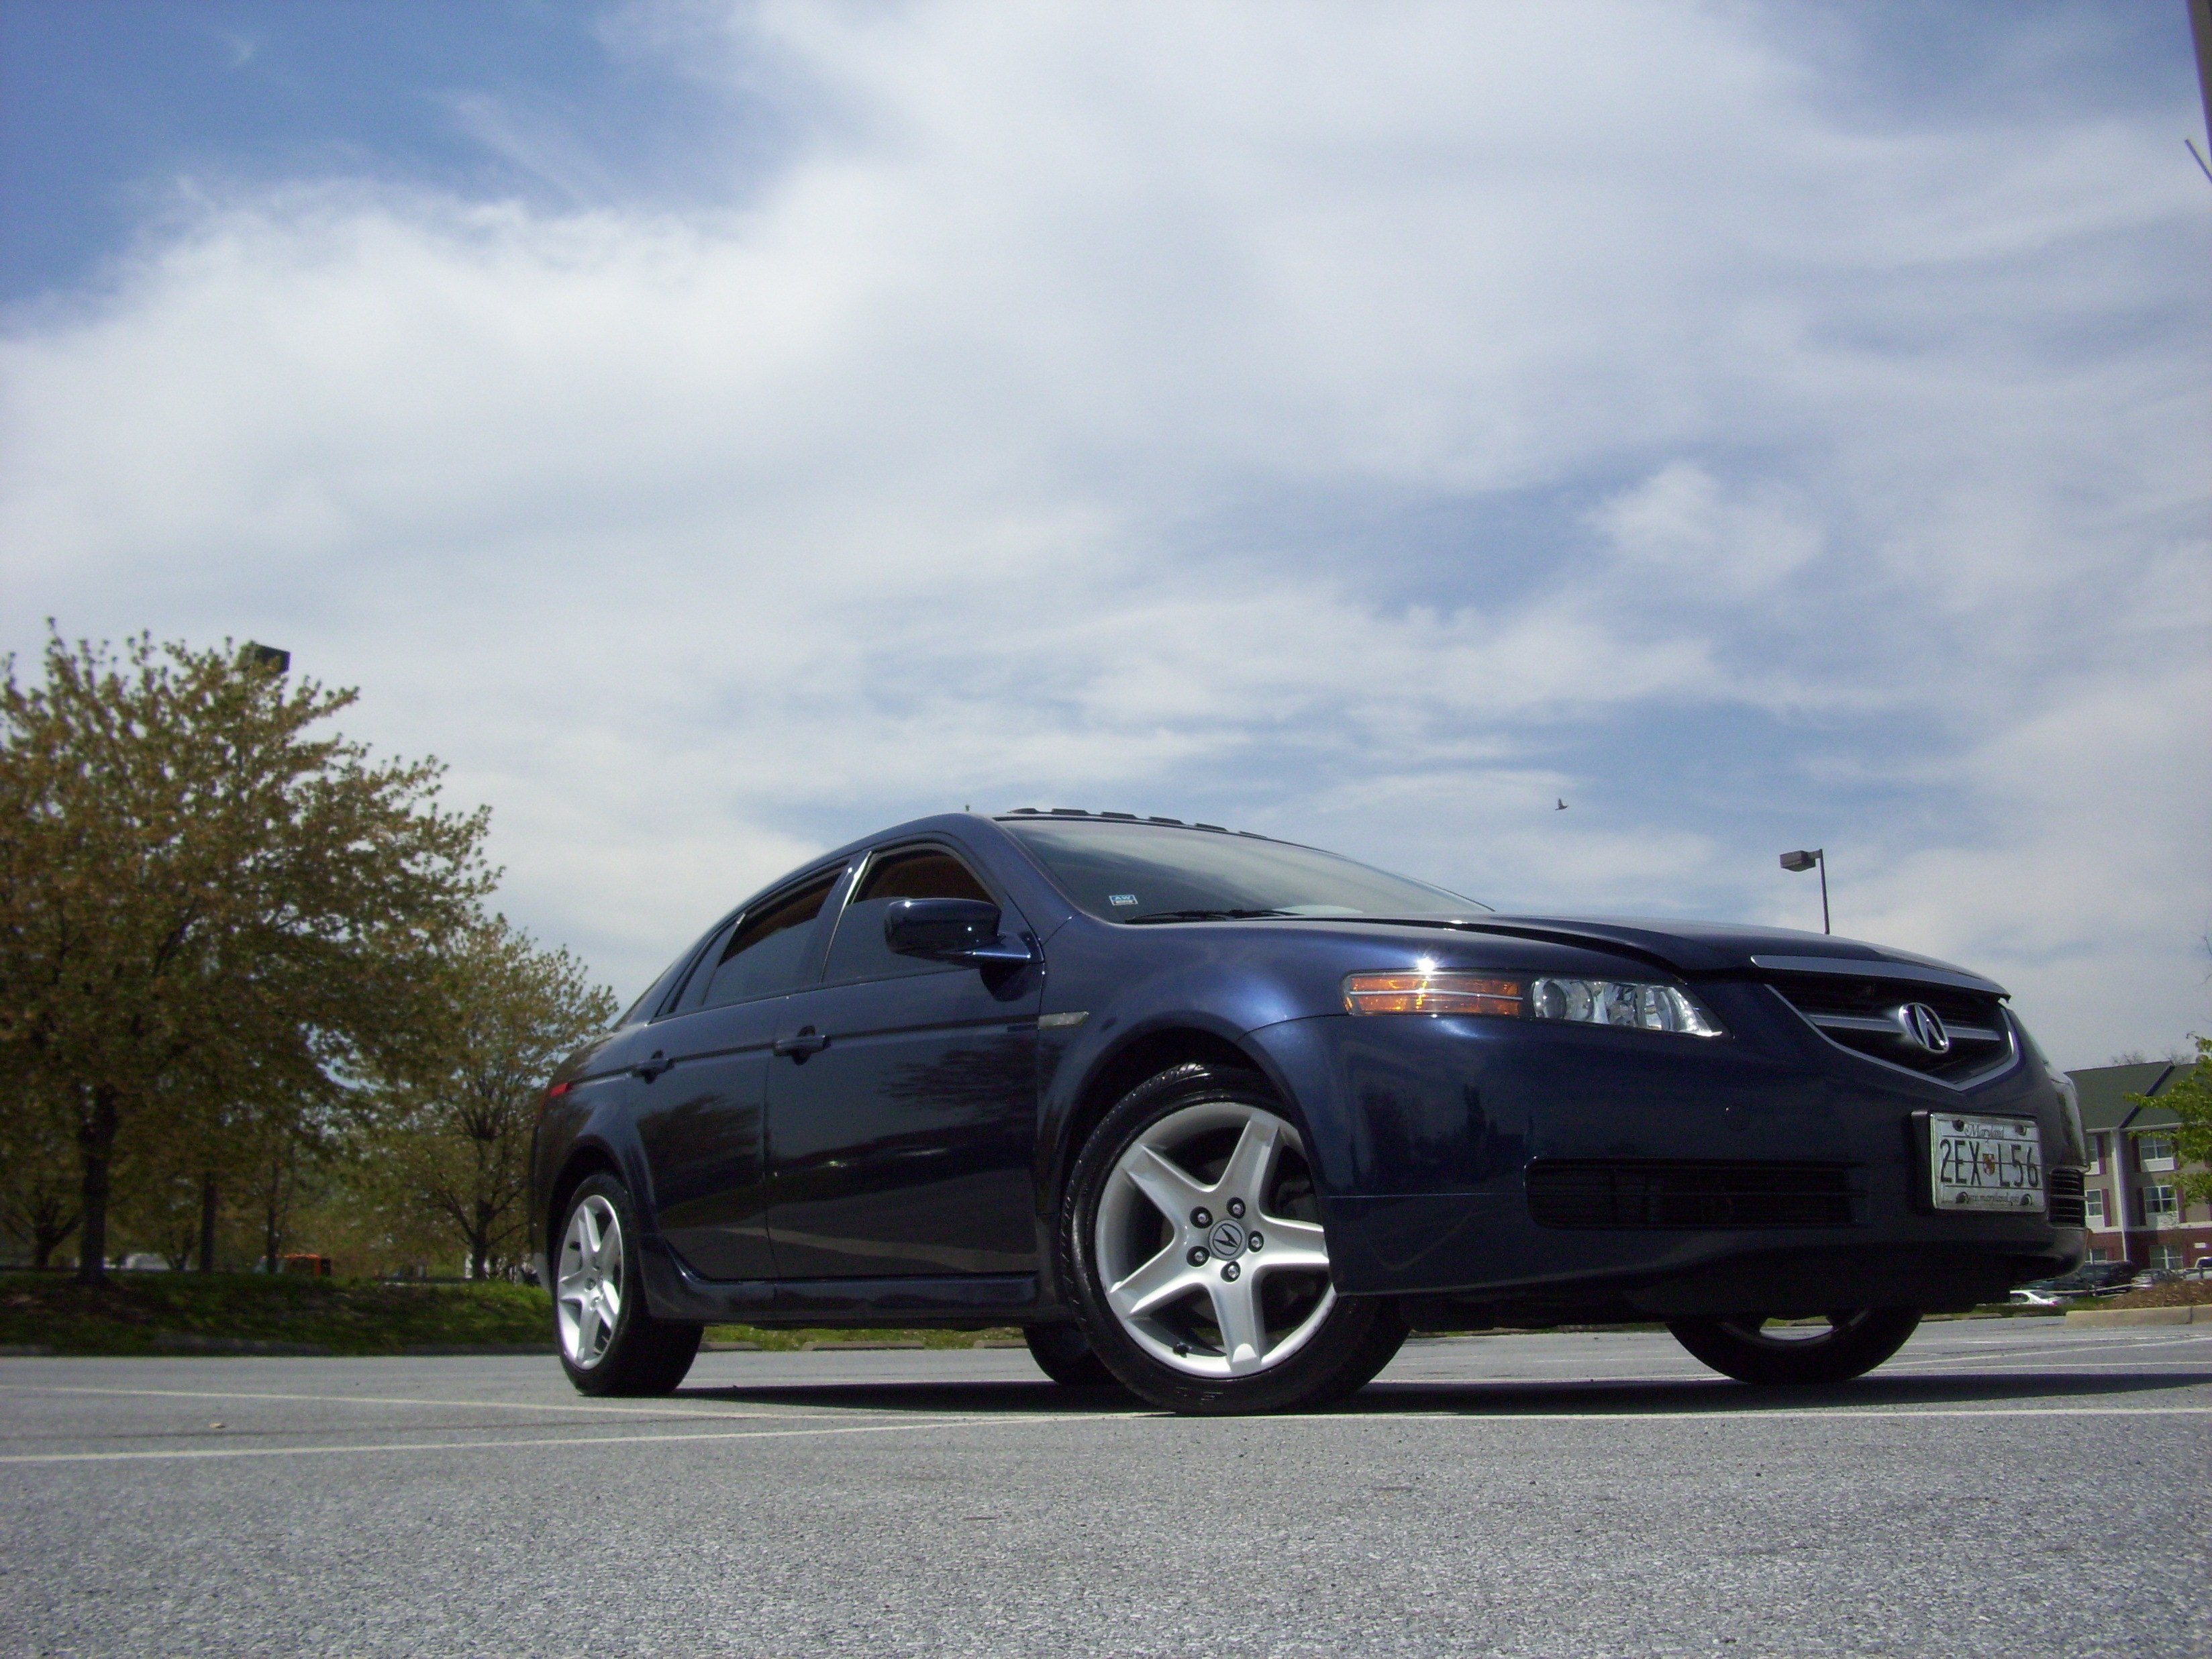 chesnowman 39 s 2005 acura tl in hyattsville md. Black Bedroom Furniture Sets. Home Design Ideas